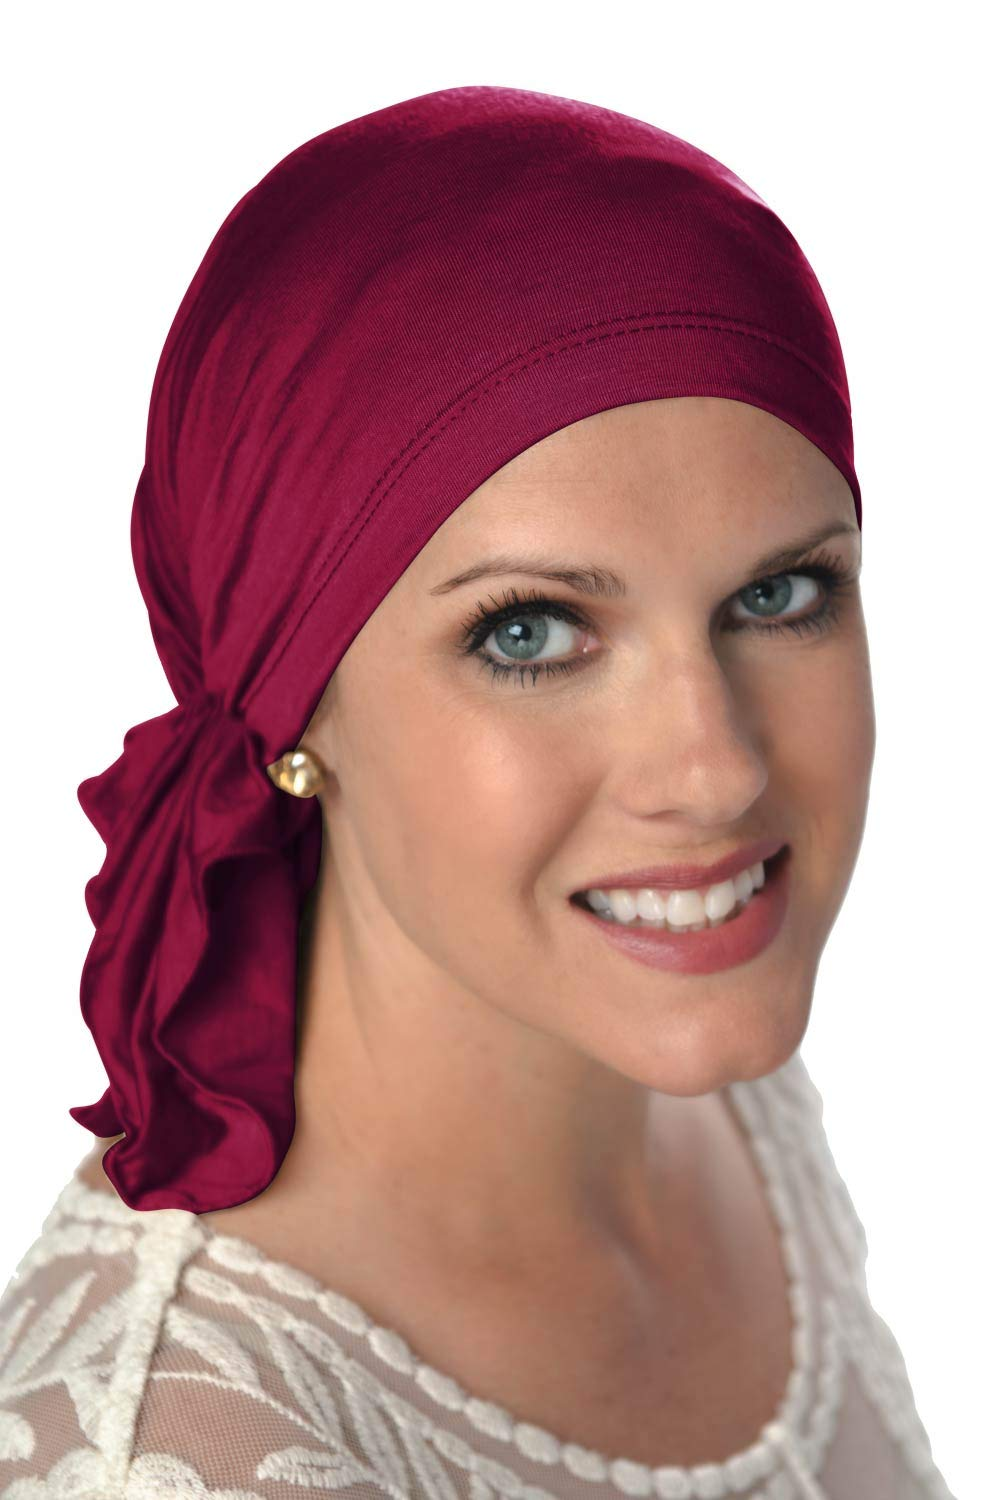 Headcovers Unlimited Slip-On Scarf- Caps for Women with Chemo Cancer Hair Loss Mauve SV-70062A-MAU